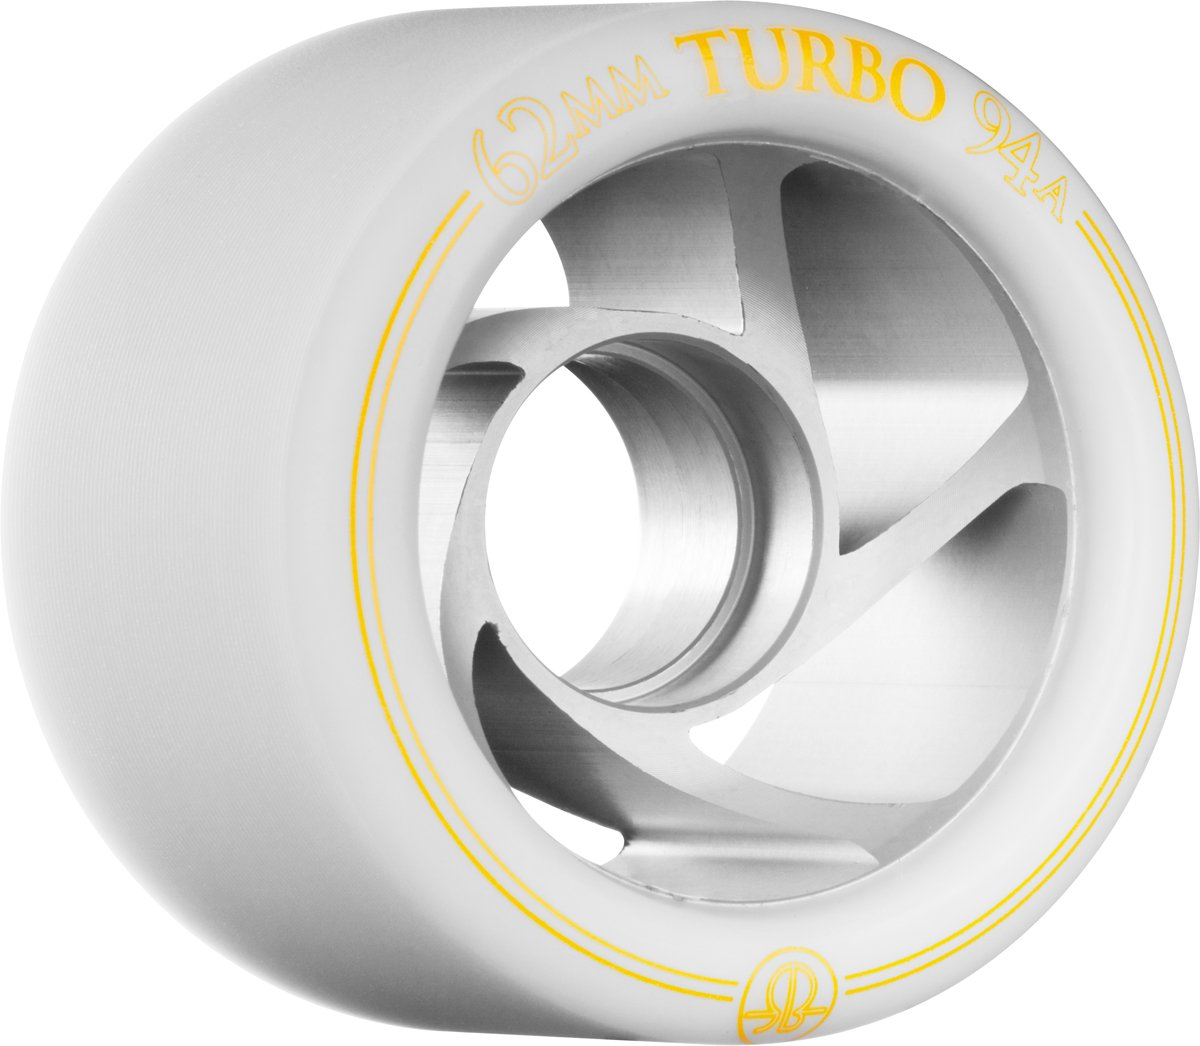 Rollerbones Turbo Speed/Derby Clear Aluminum hub Set of 8 Rollerskate Wheels